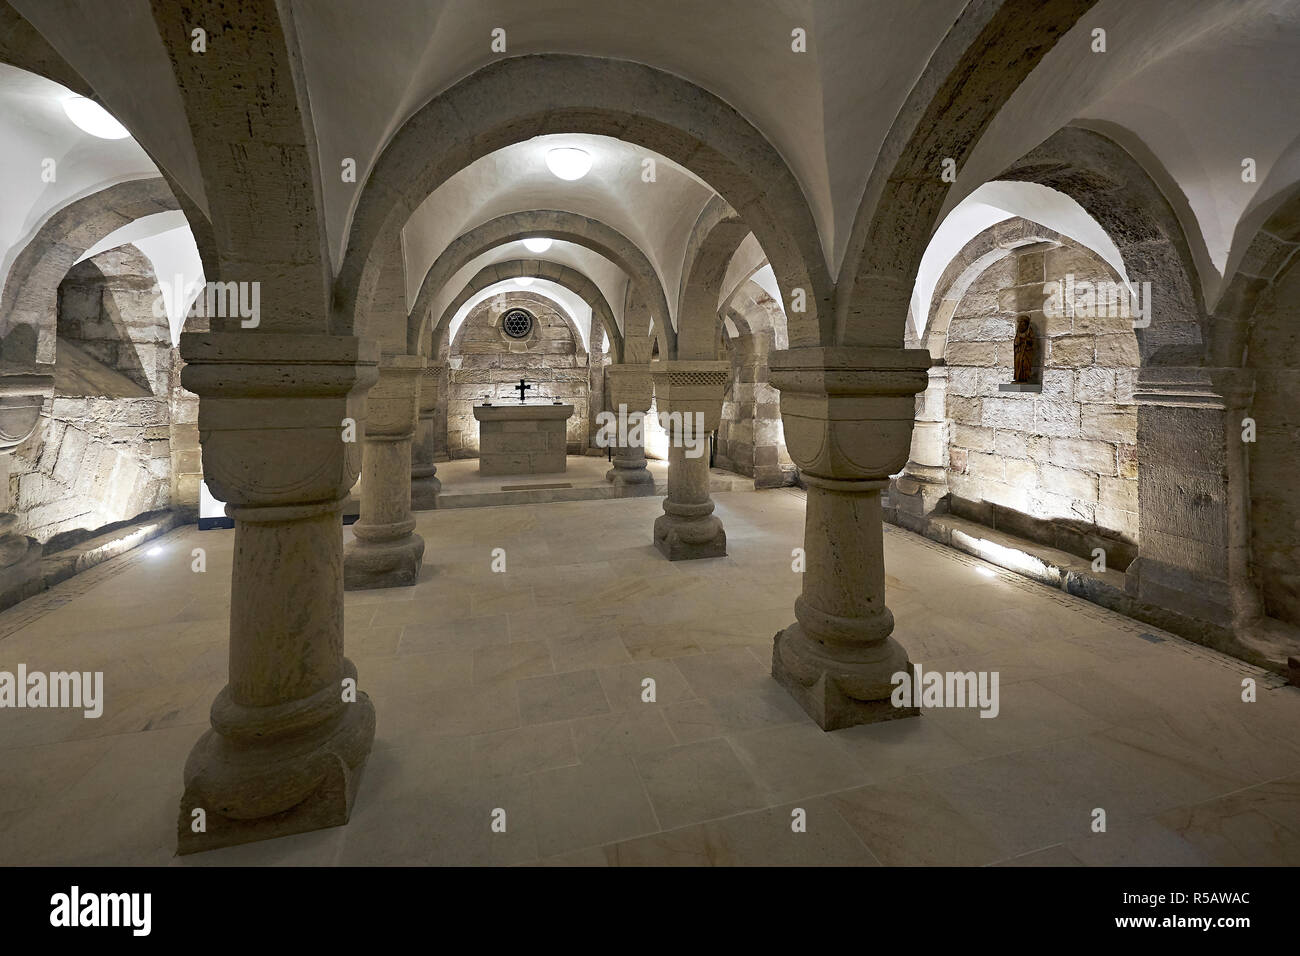 Interior view of the Romanesque crypt from the cathedral to the Holy Cross Nordhausen, Thuringia, Germany - Stock Image